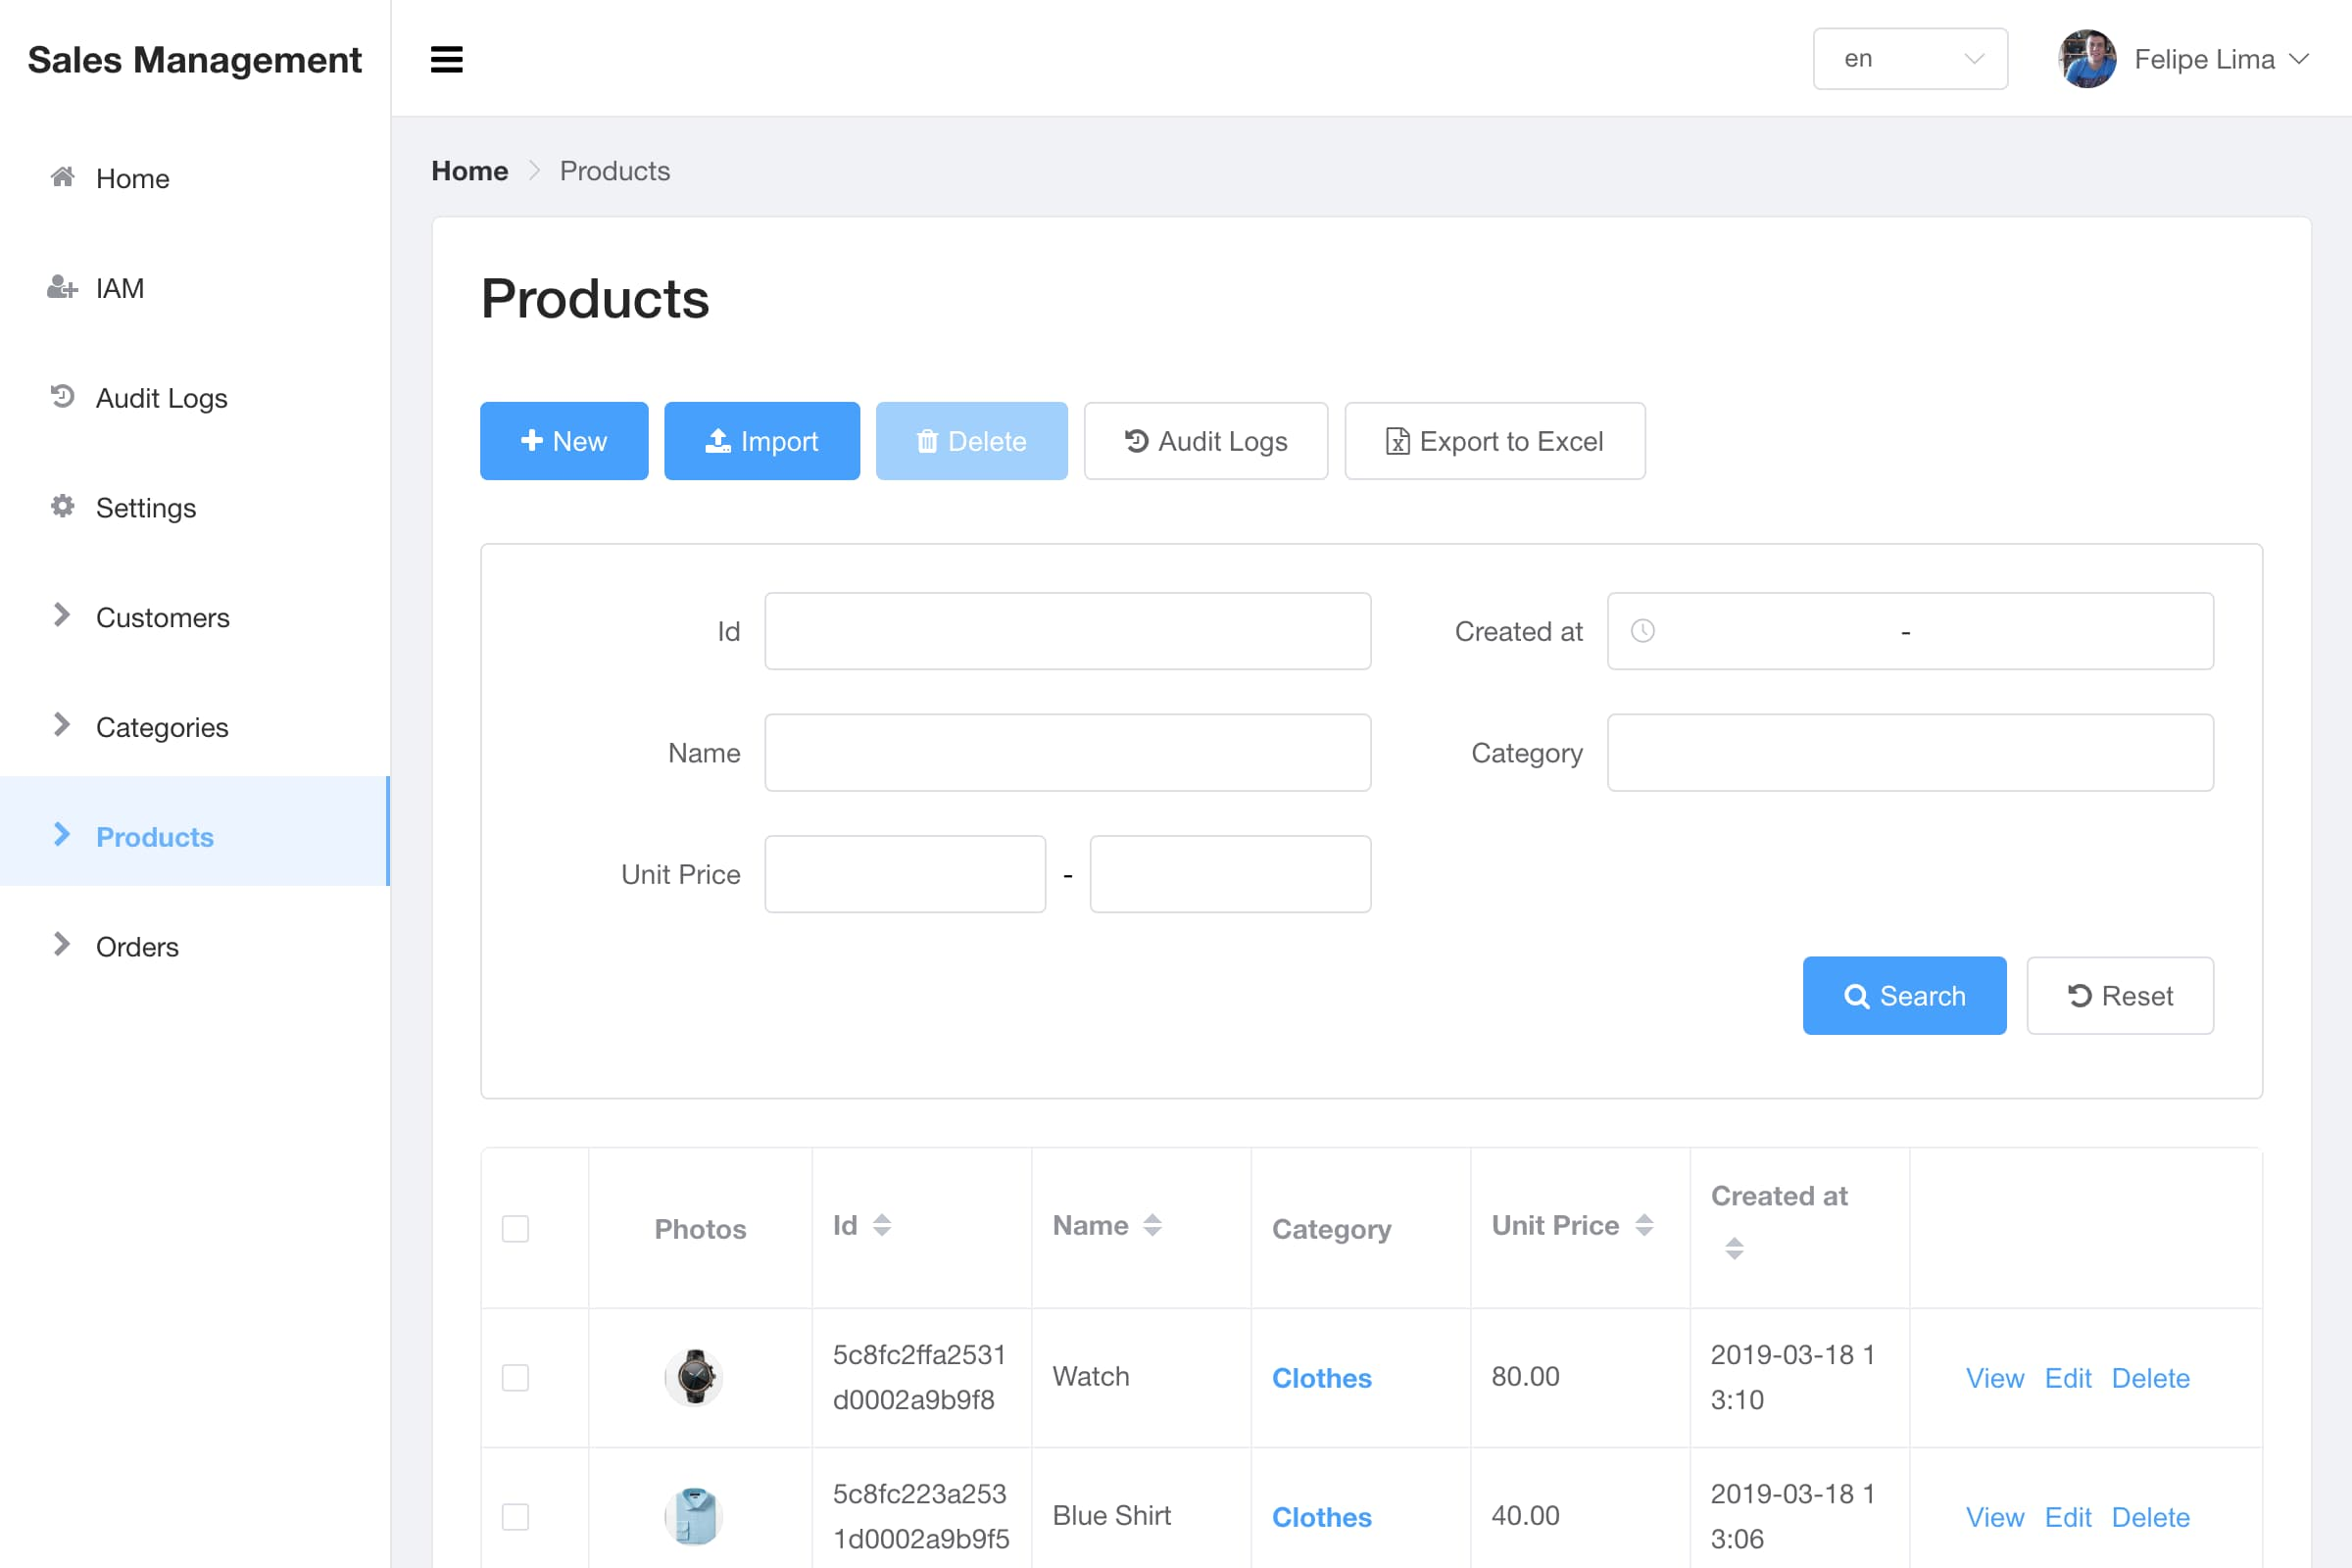 Listing and Filtering